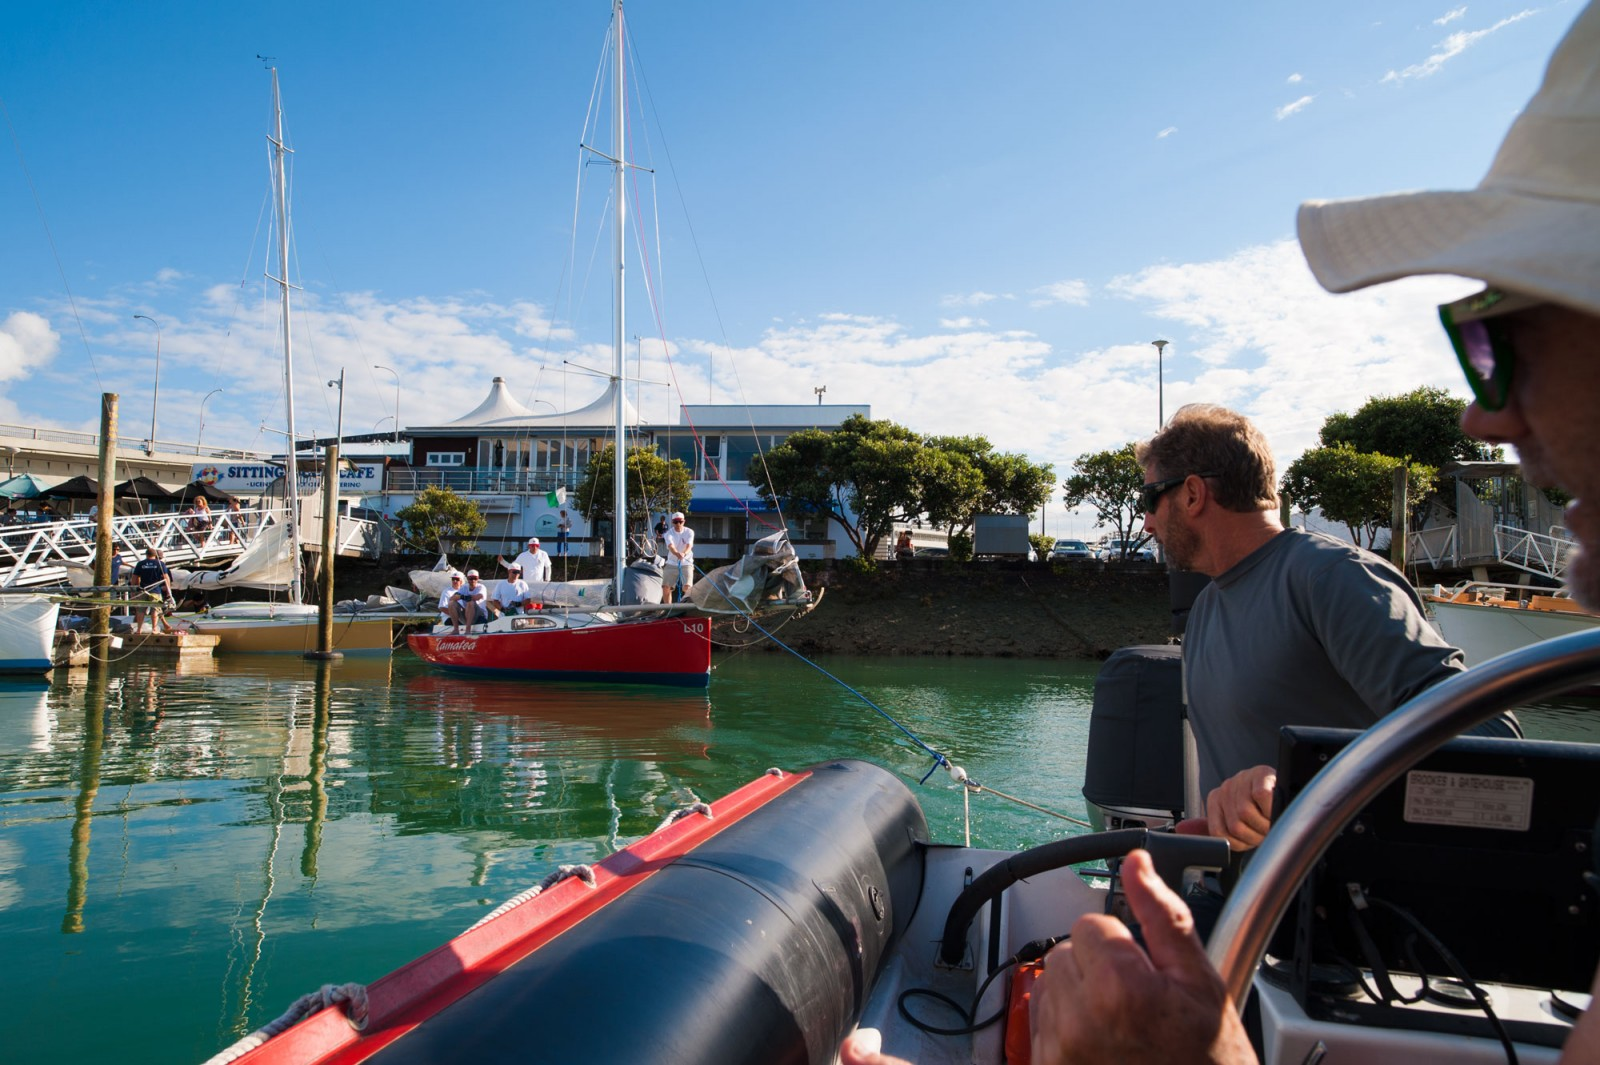 Mullet boats leave their outboards on the dock in a bid to save weight, and instead hoist 700 square feet of sail to the power of the wind. Auspiciously, they were towed out of the dock in front of the Ponsonby Cruising Club, Westhaven, in the order they were to finish in.